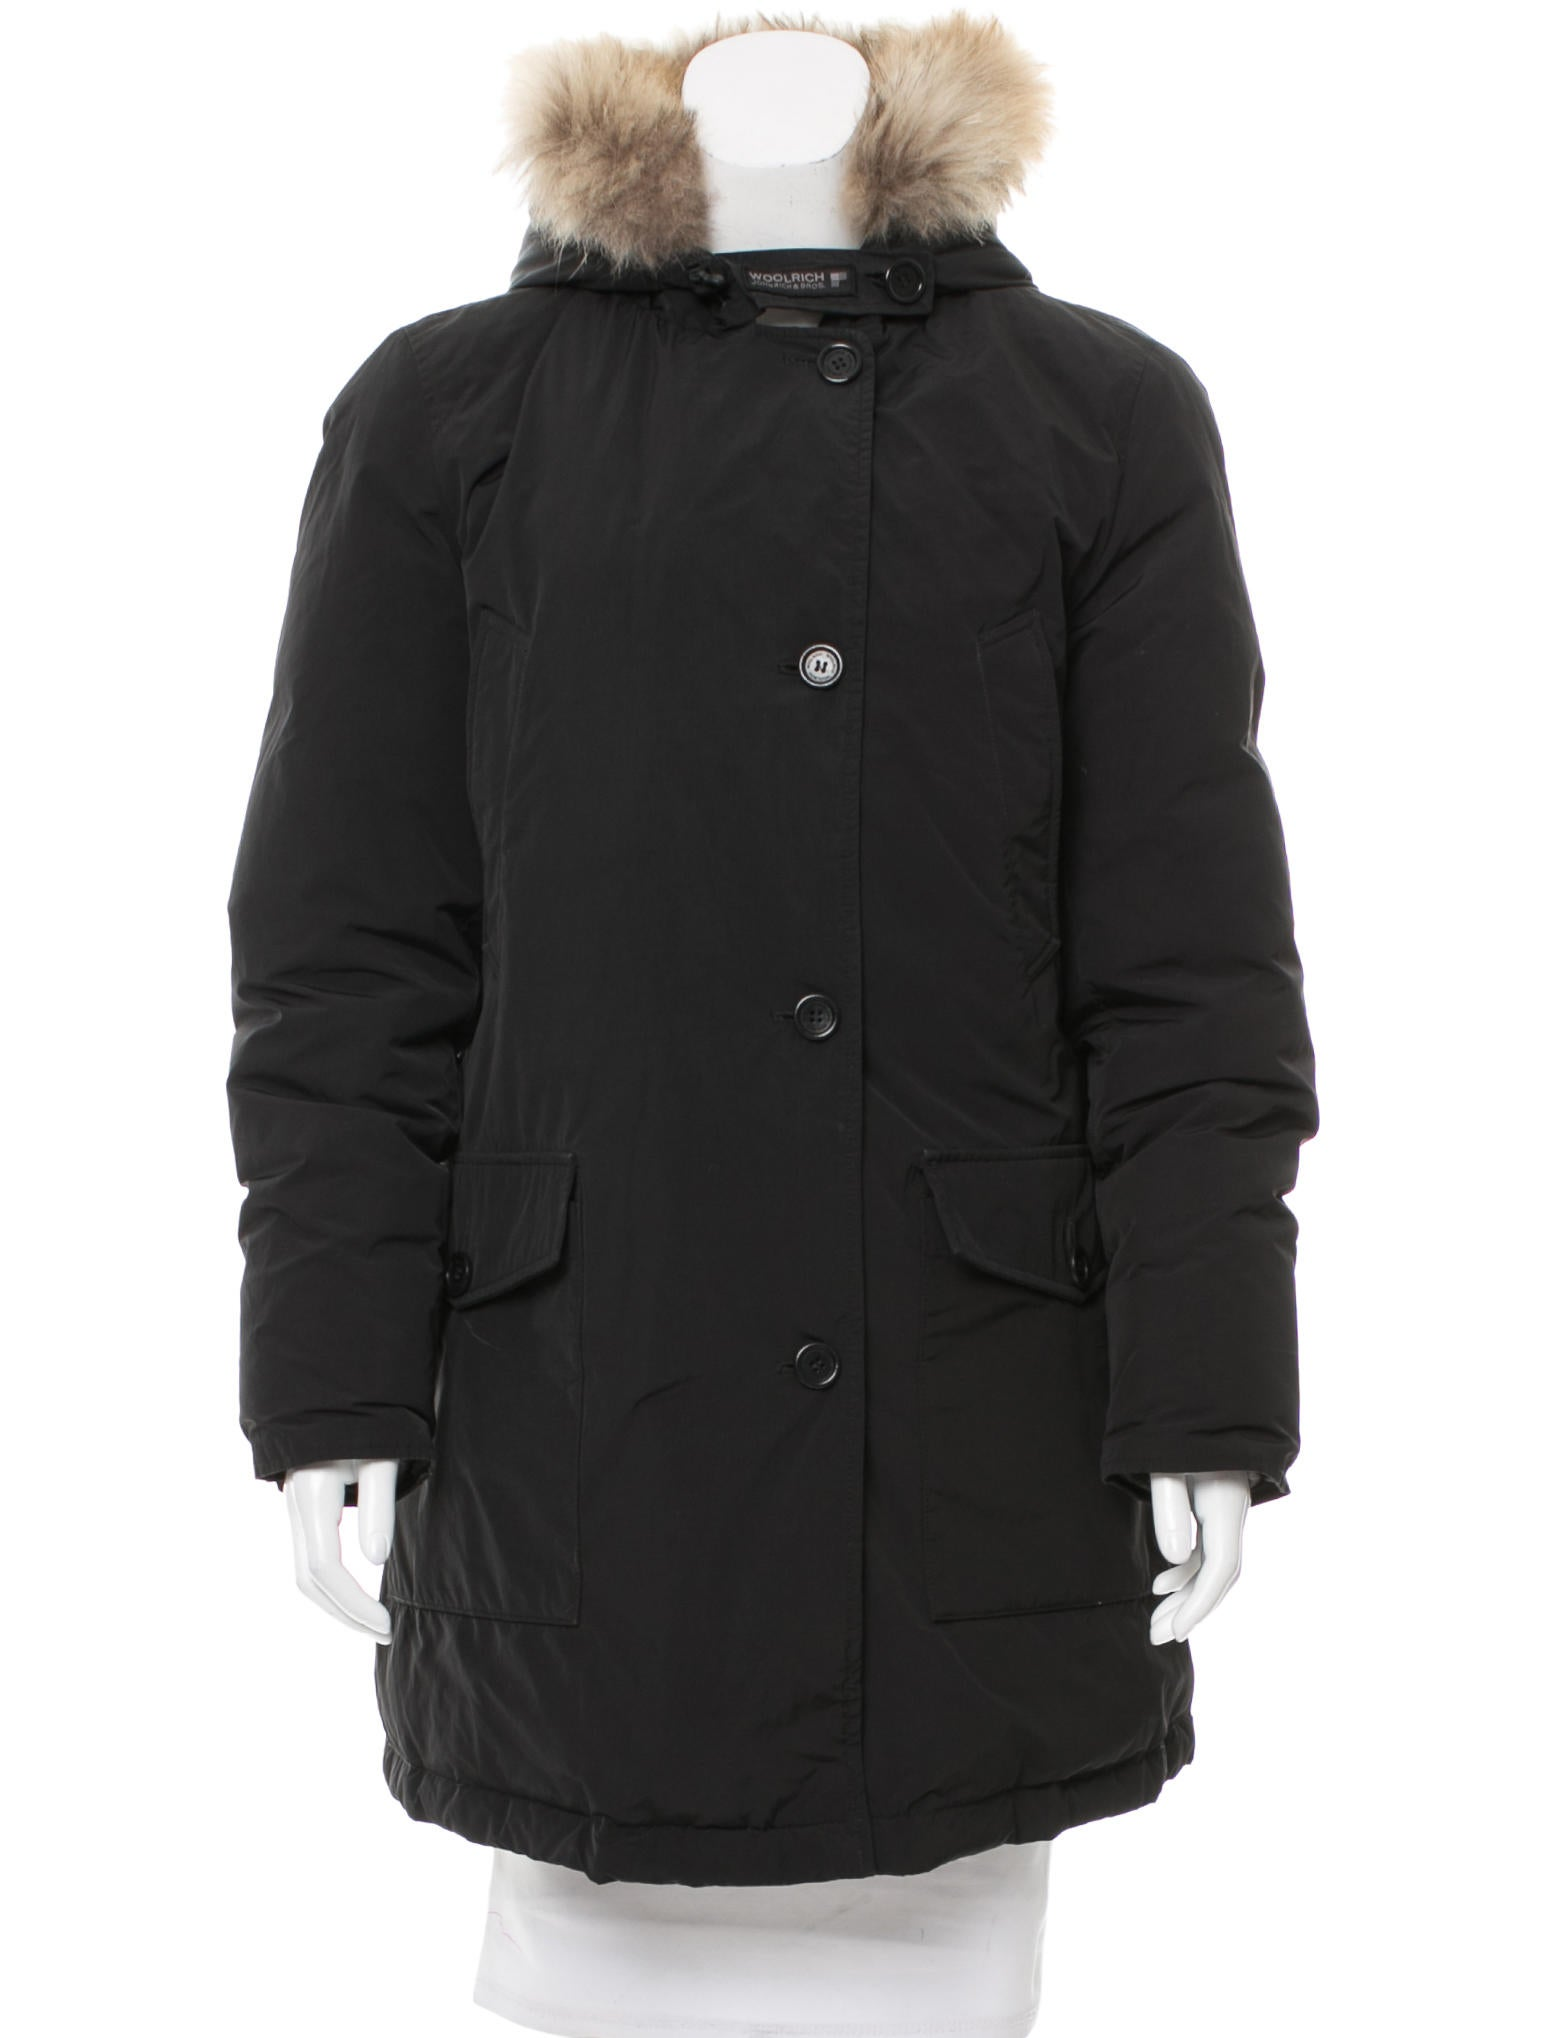 Woolrich womens coat